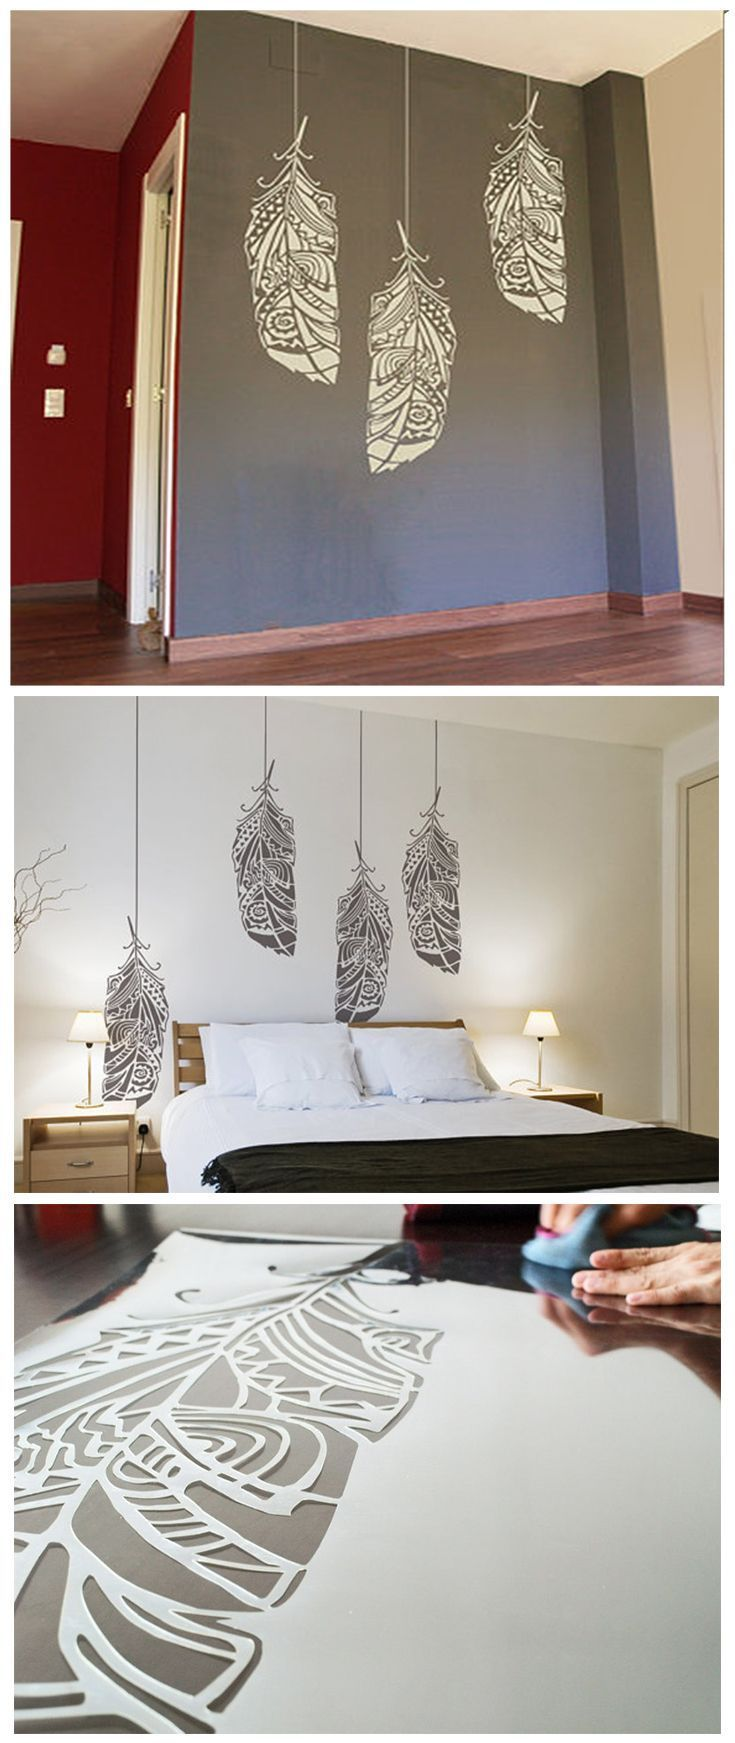 Cool Feather Stencil Ethnic Decor Element For Wall Furniture Or